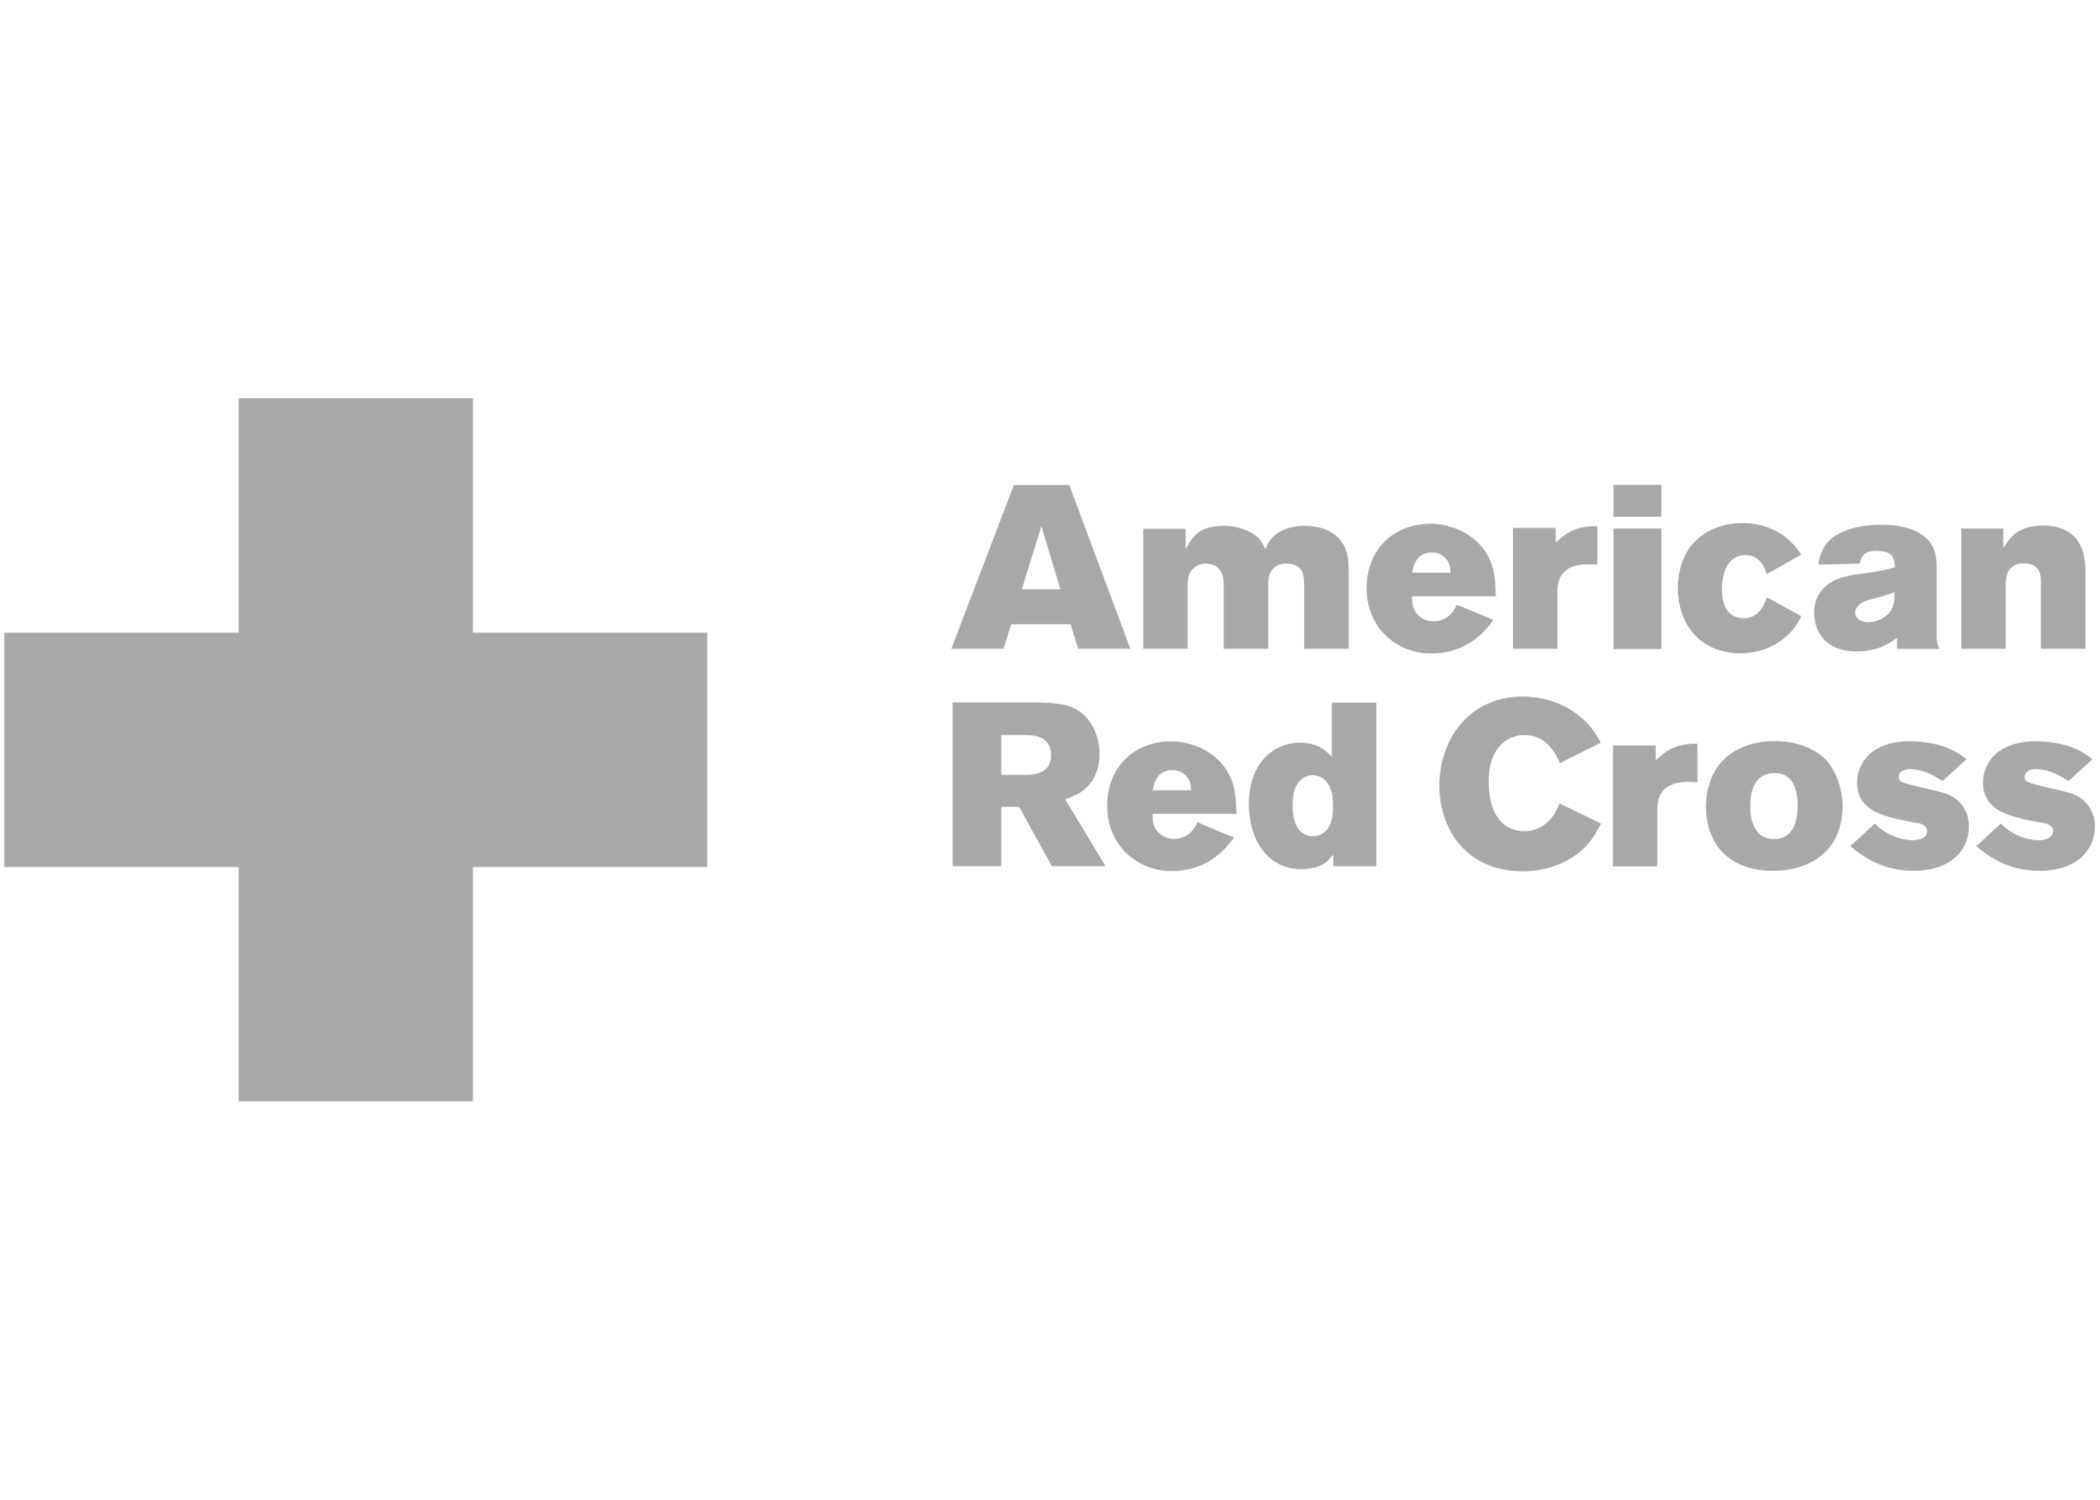 https://toprightpartners.com/wp-content/uploads/2017/08/AmericanRedCross.png